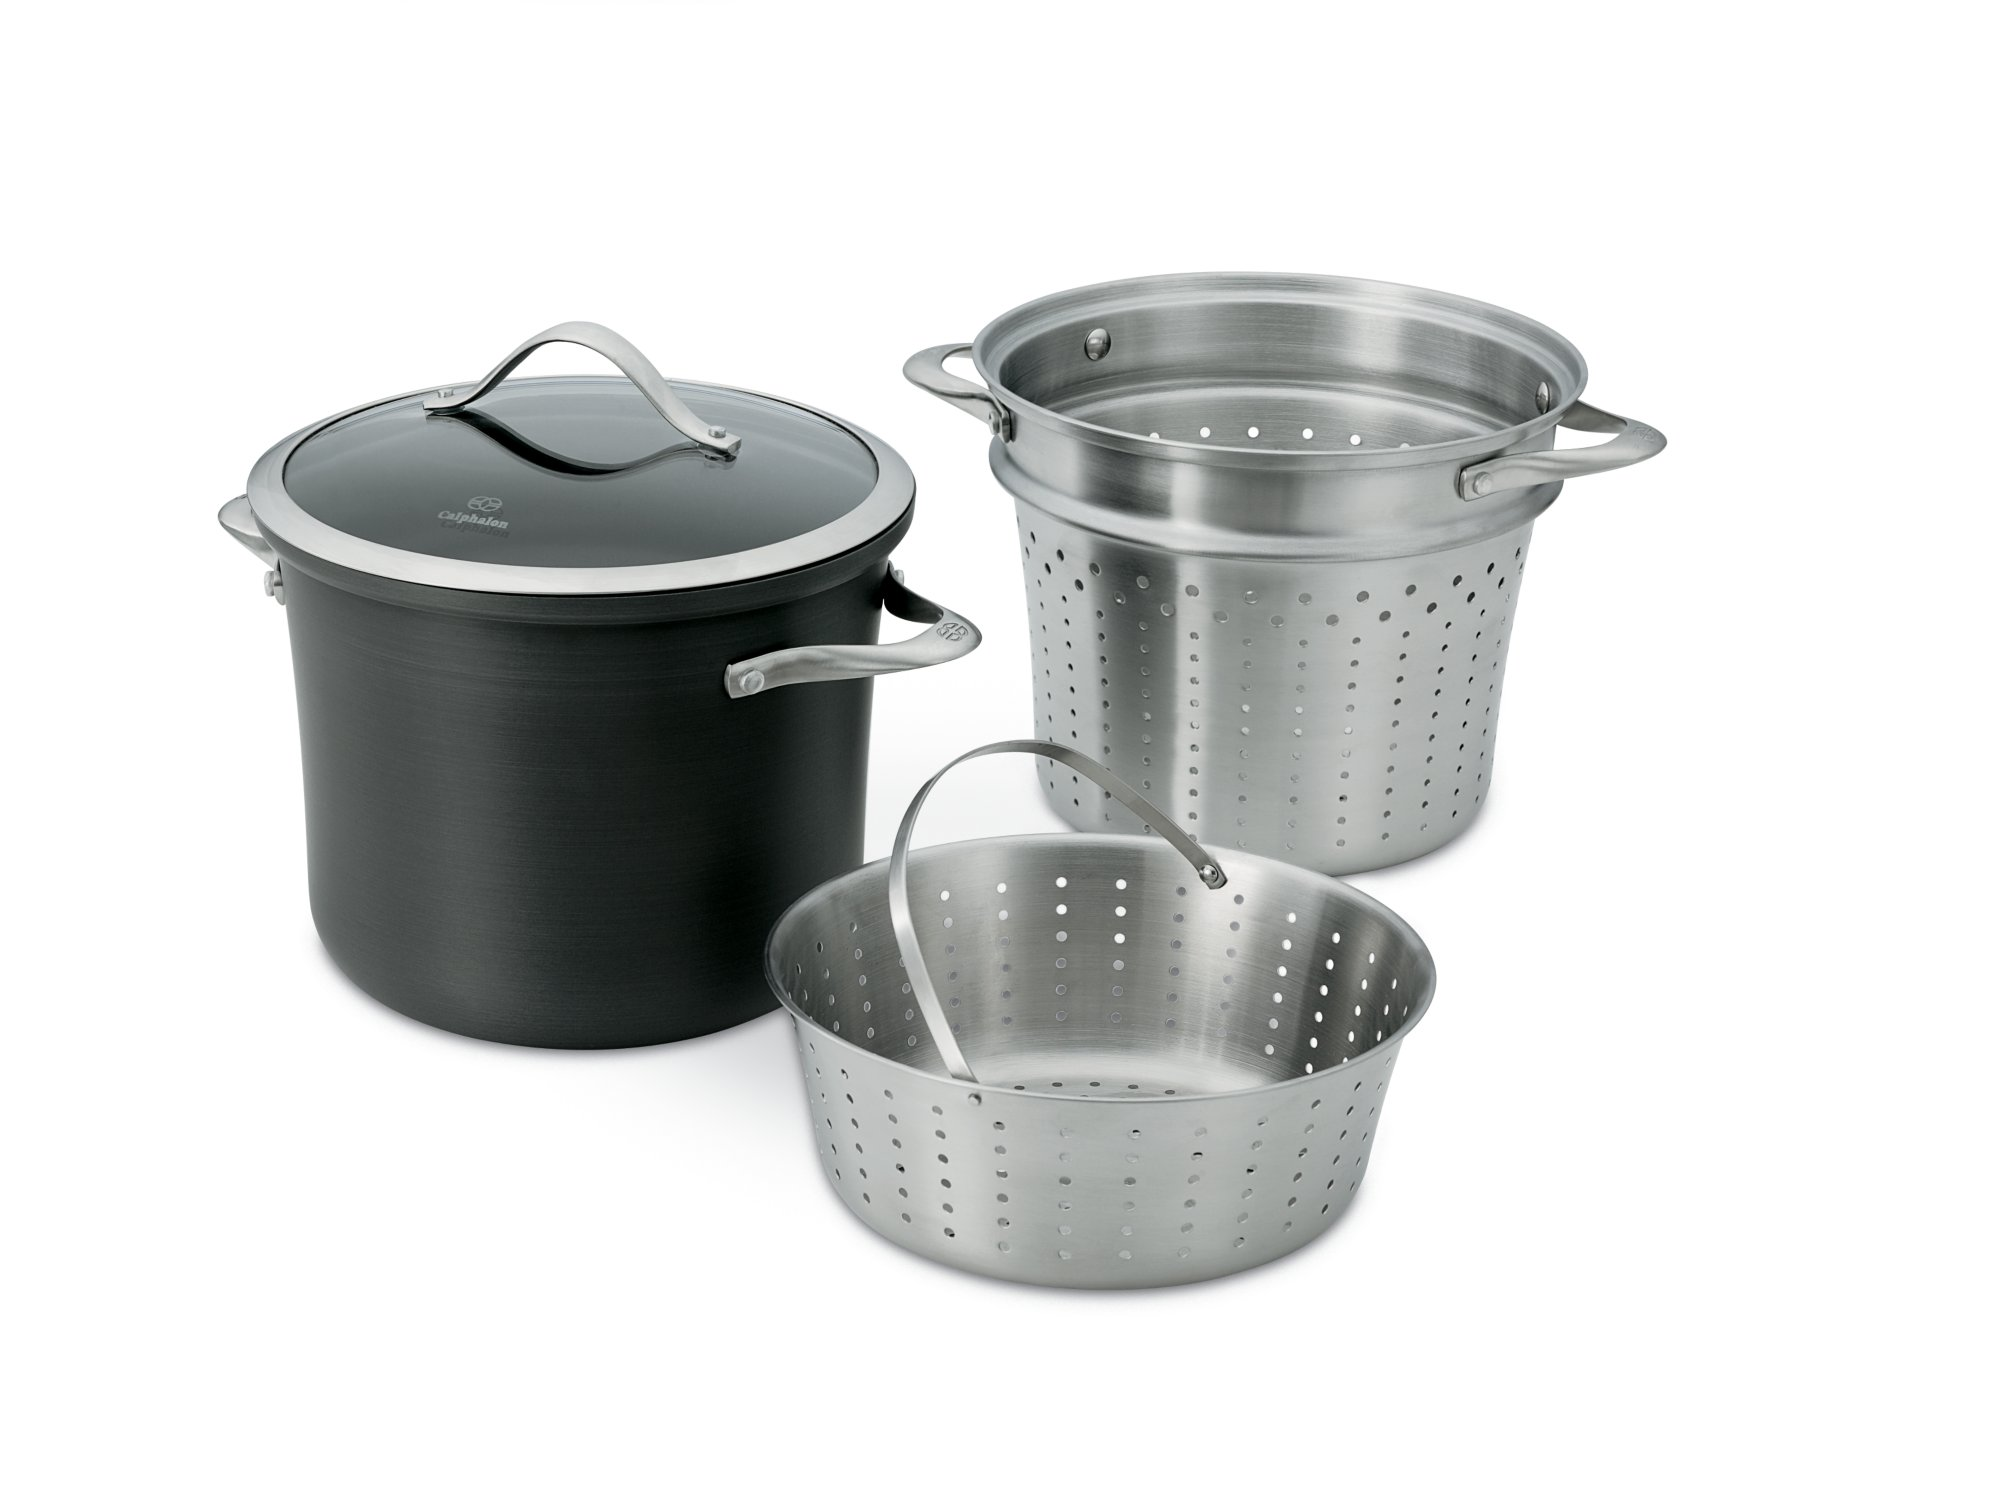 Calphalon Contemporary Nonstick 4-pc. Multi-Pot Set